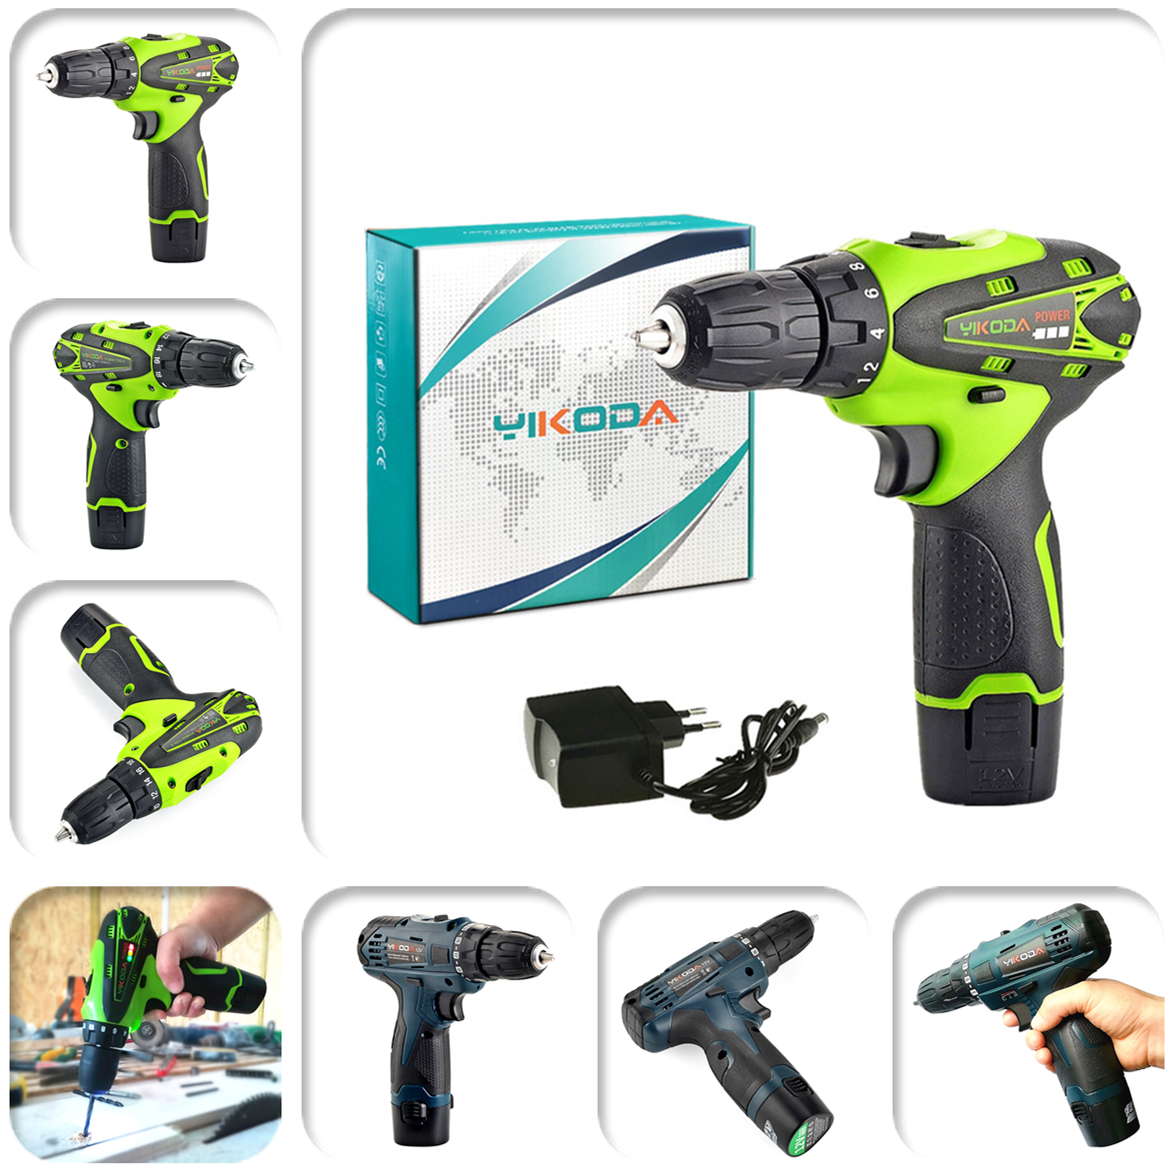 12v Cordless Drill Furniture Install 10mm Rechargeable Electric Screwdriver Led Lighting Double Speed Forward Reverse Power Tool